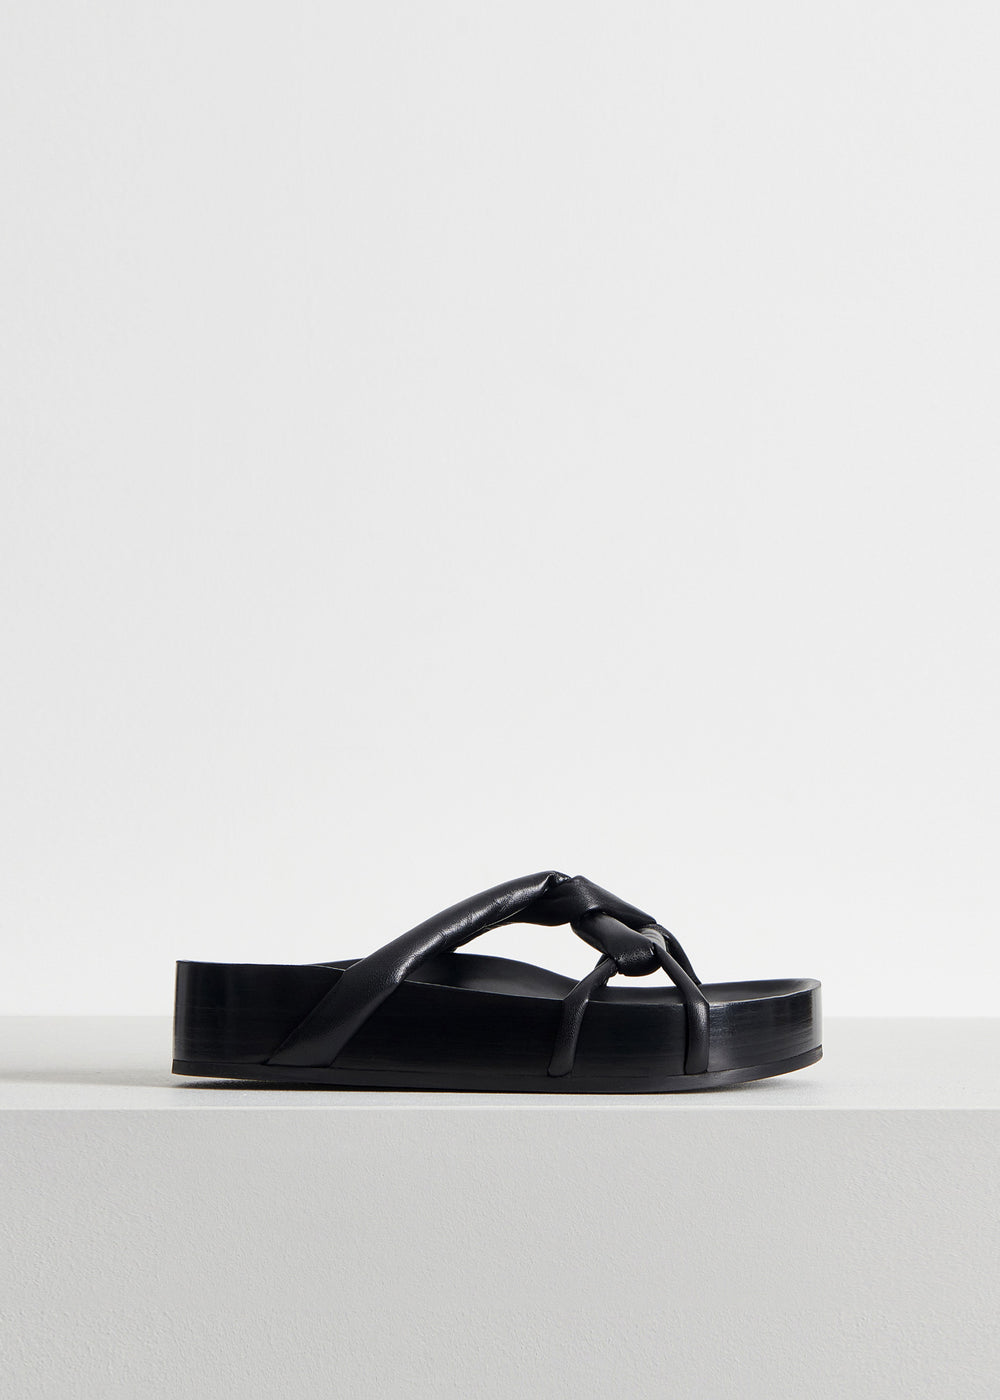 Cord Sandal in Smooth Leather - Black - CO